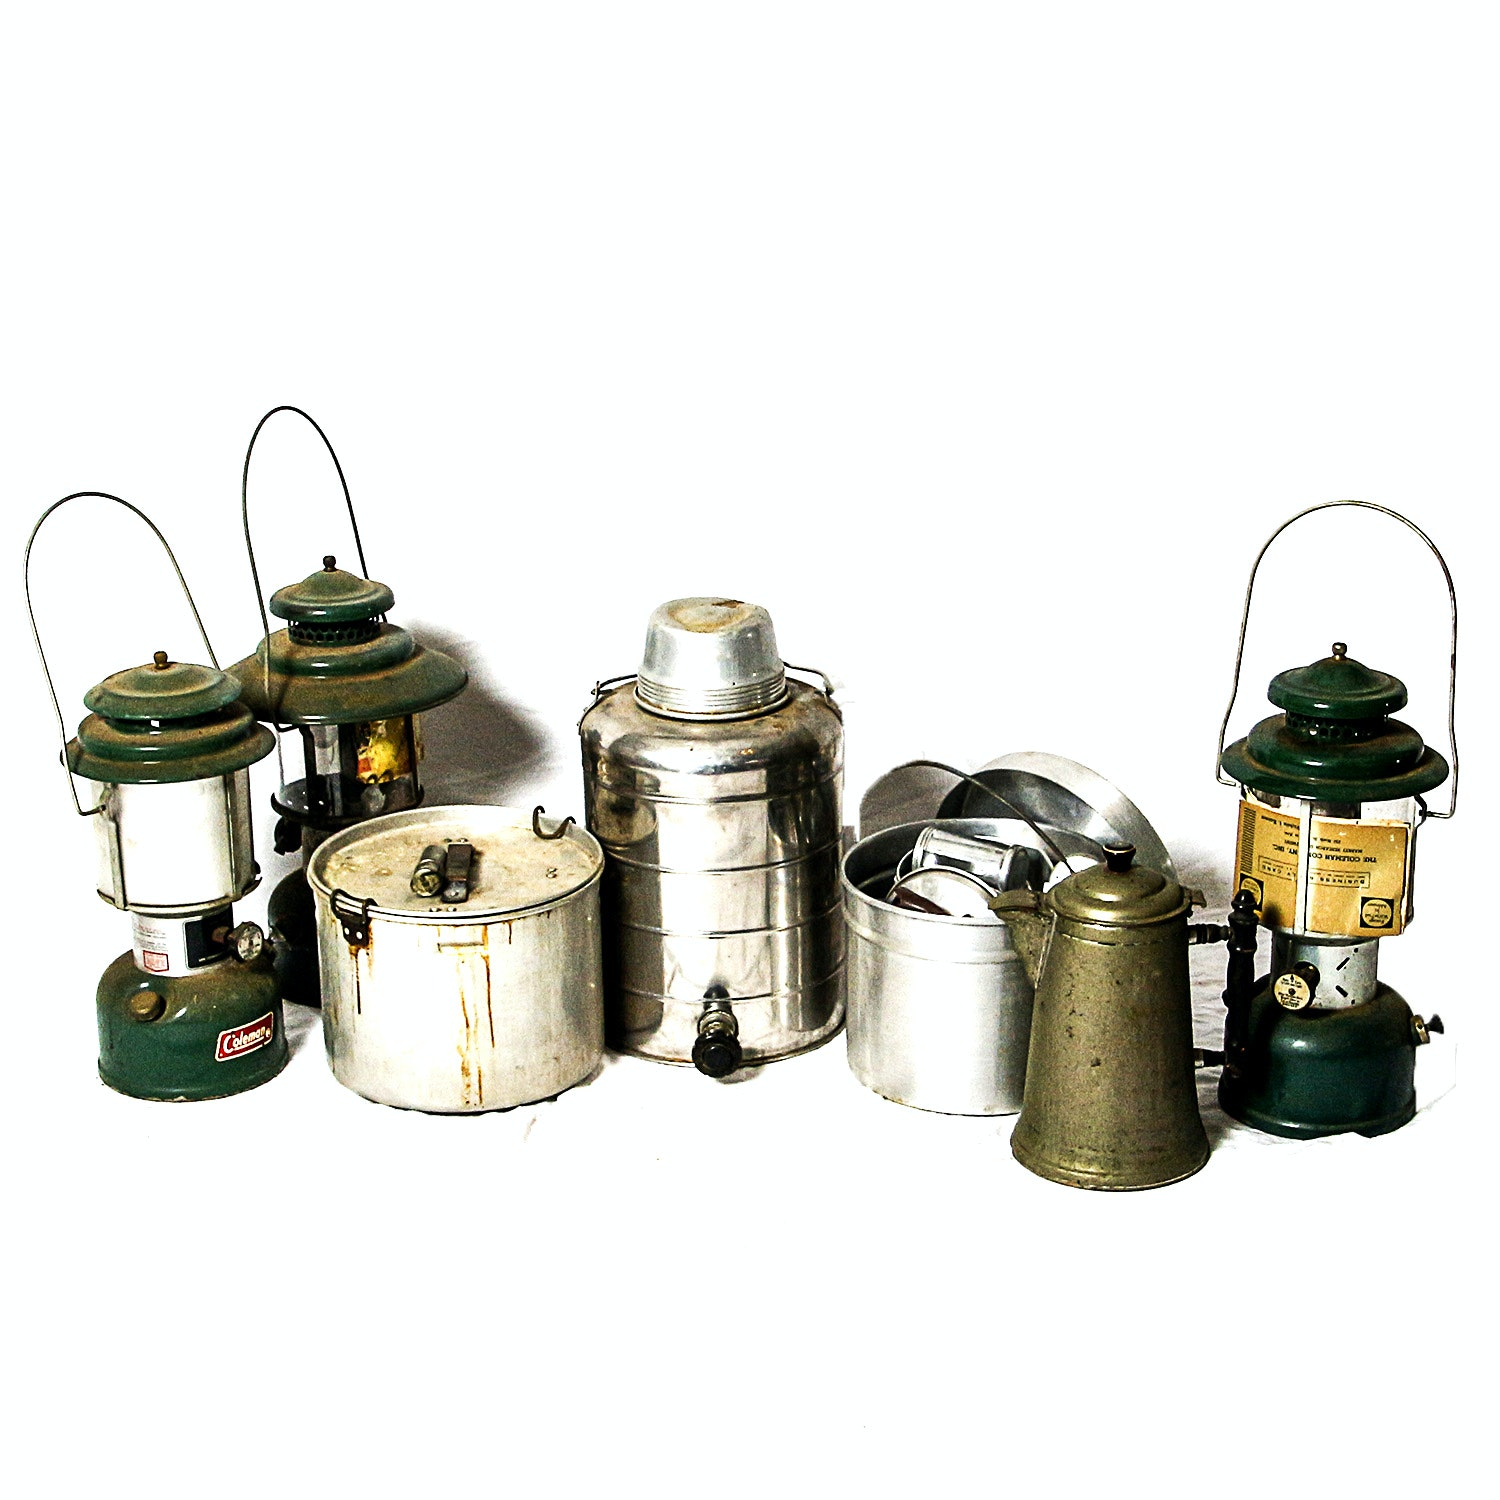 Coleman Lanterns and Other Camping Gear